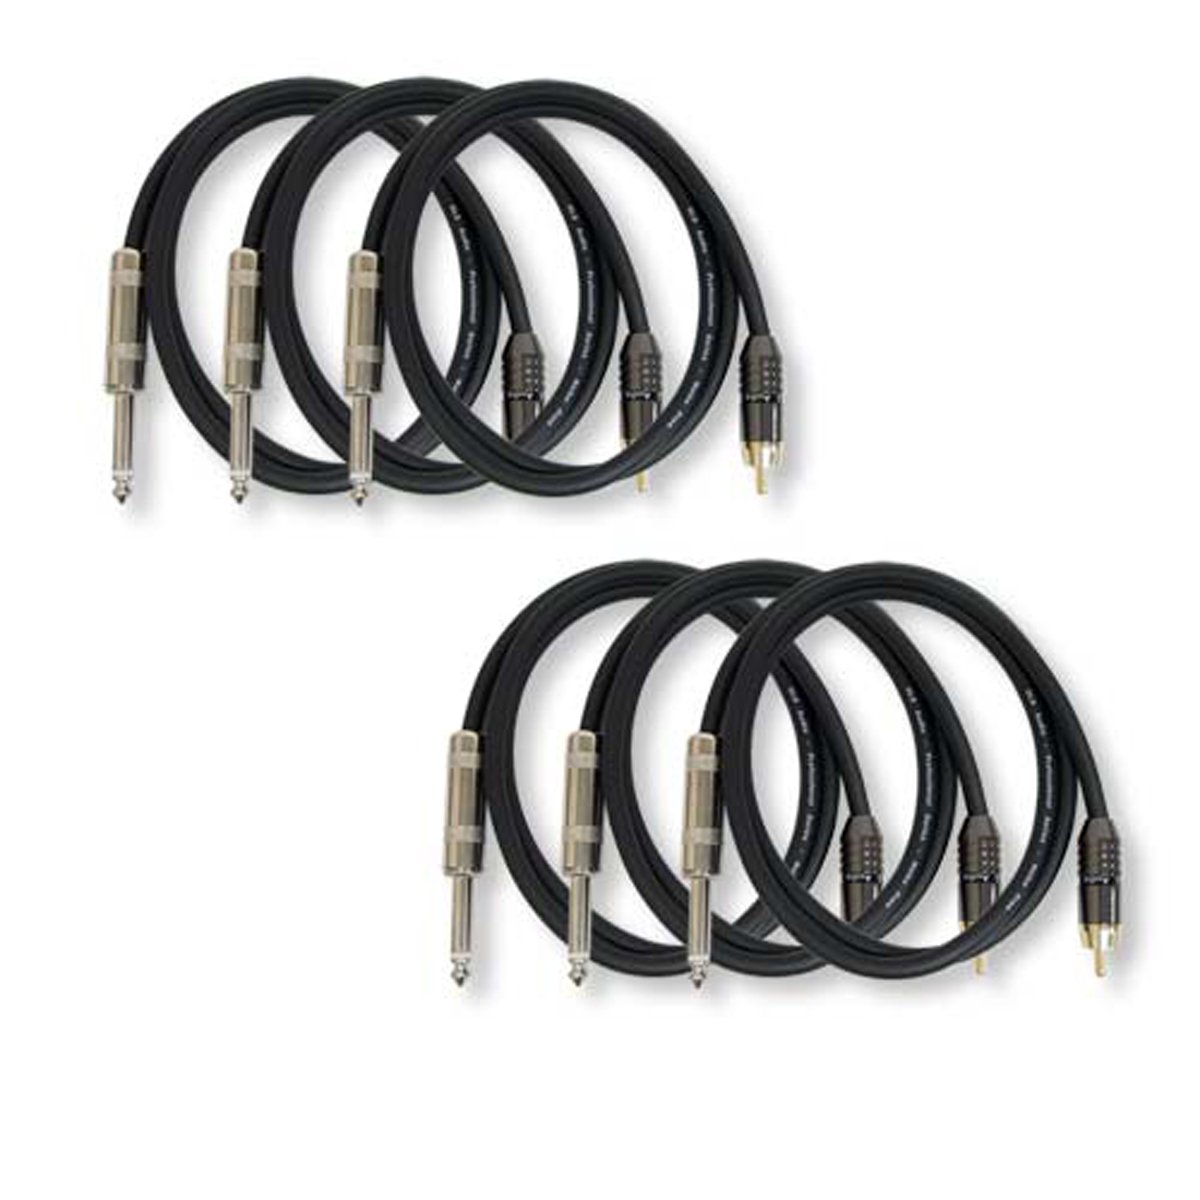 GLS Audio 3ft Patch Cable Cords - RCA To 1/4 Black Cables - 3' Pro Series Cord - 6 PACK